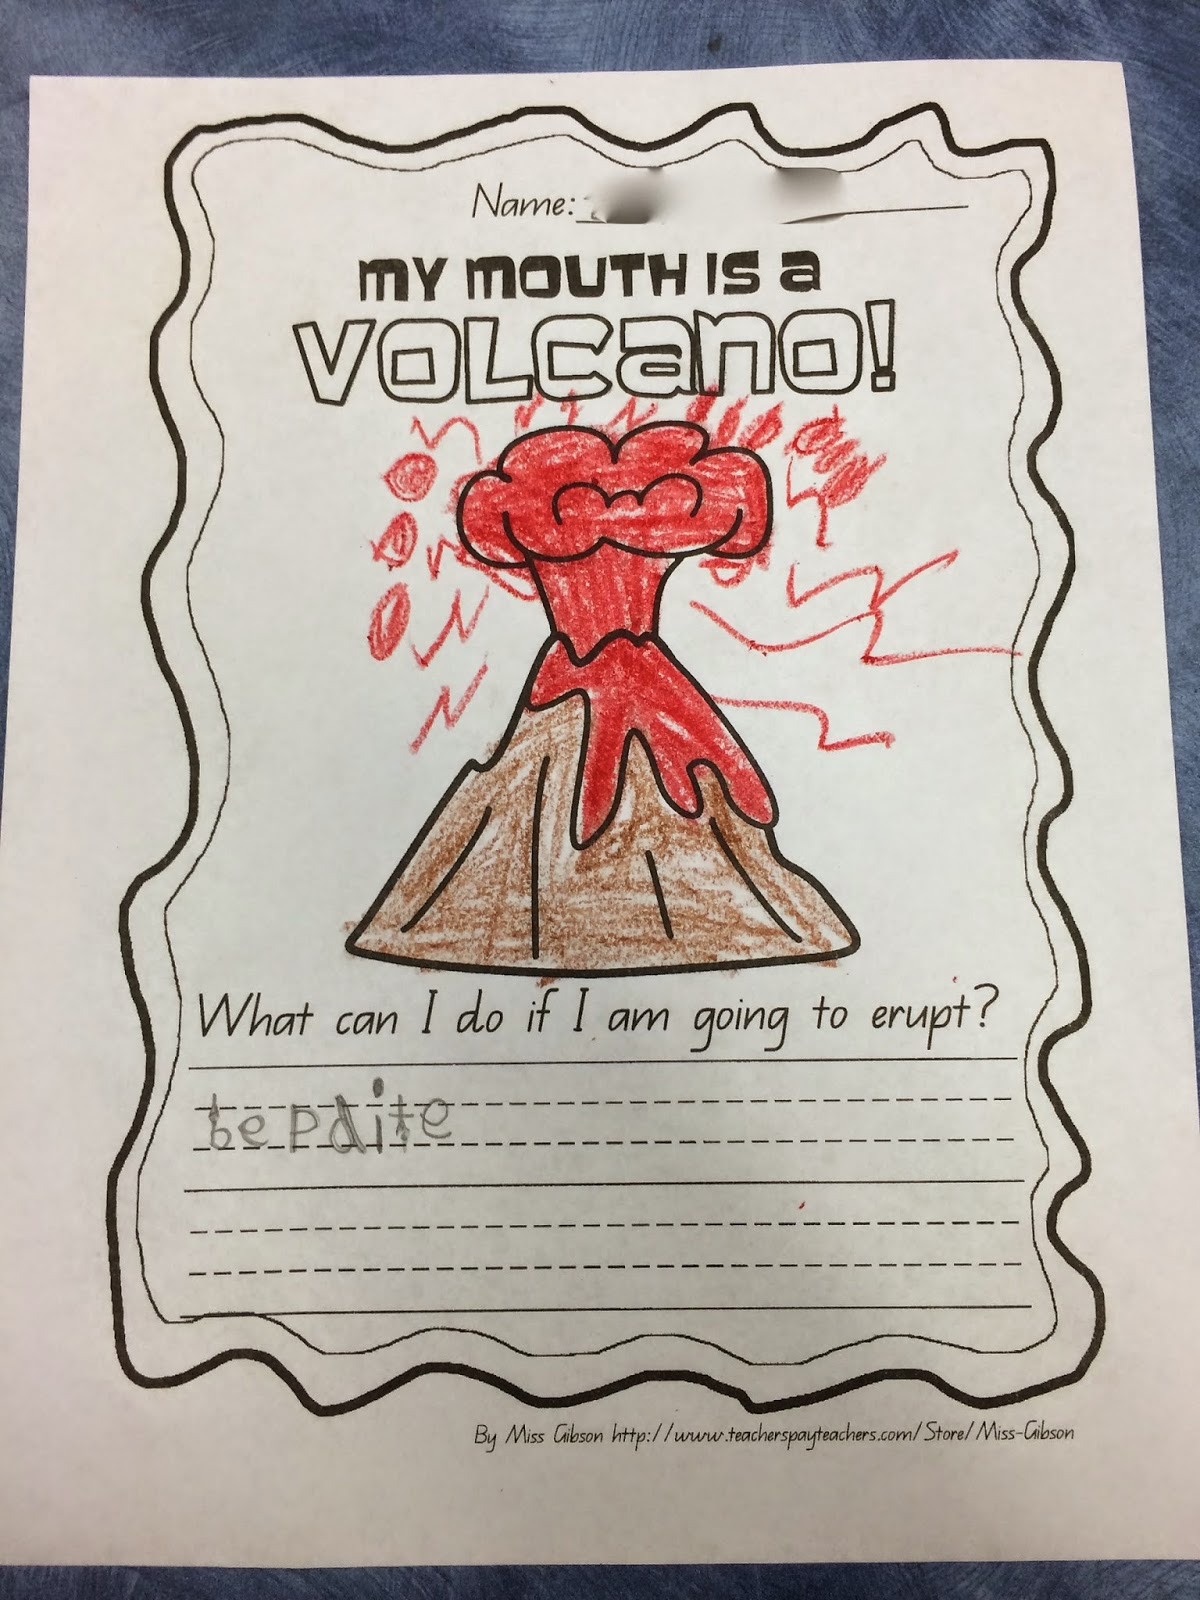 My mouth is a volcano writing activity for kindergarten